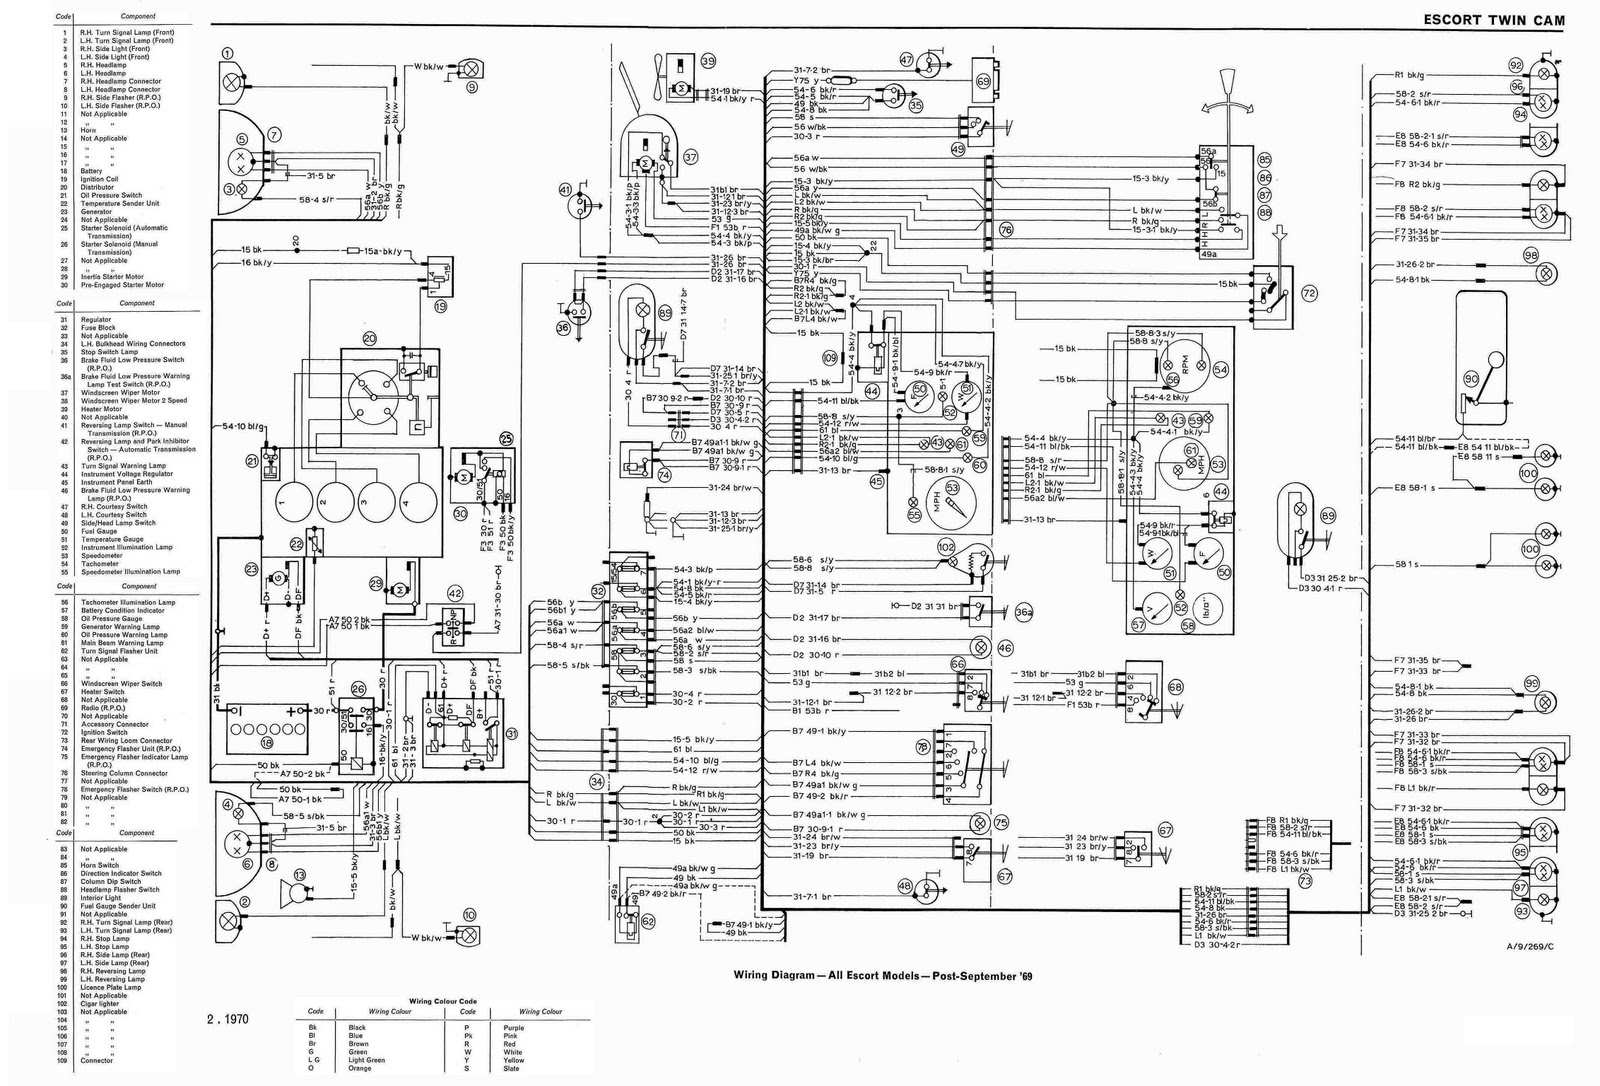 medium resolution of 1969 cadillac wiring diagram explore schematic wiring diagram u2022 1994 cadillac deville window diagram 1969